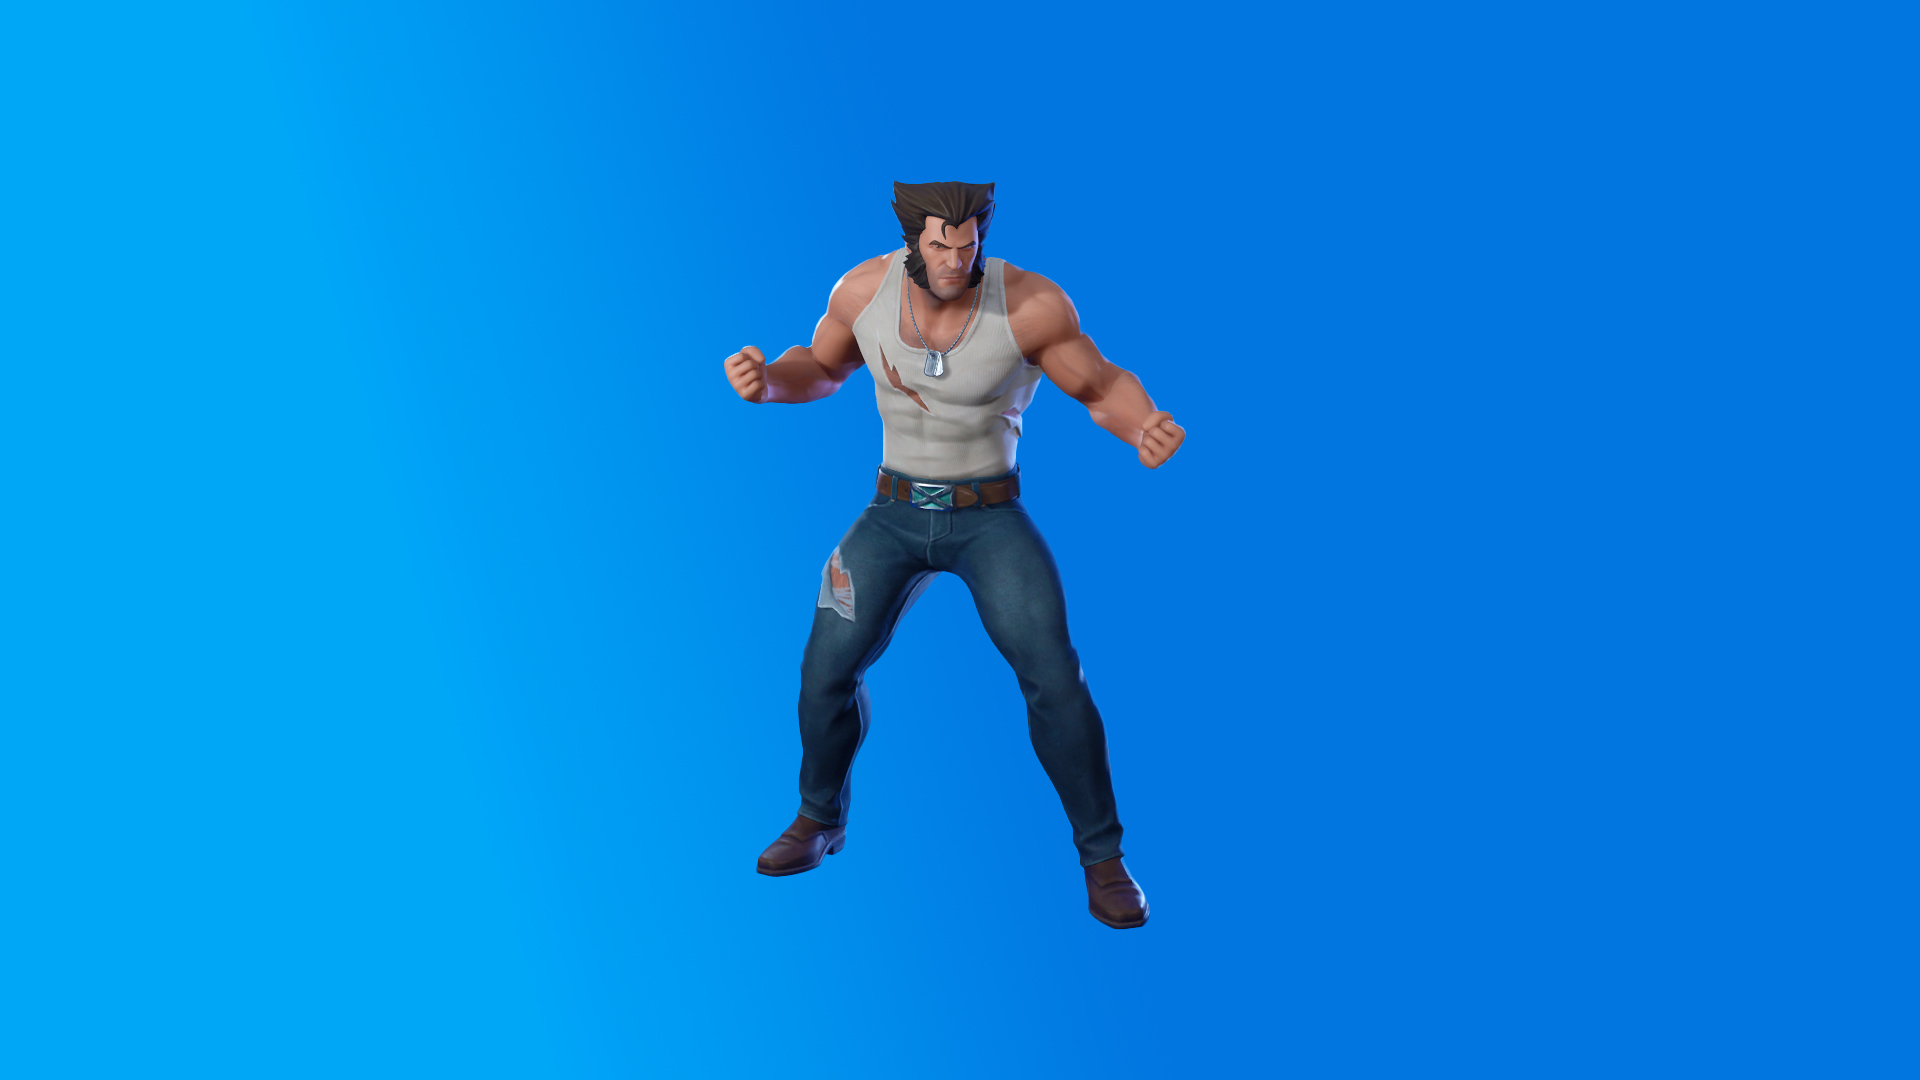 1336x768 Logan Fortnite Skin Hd Laptop Wallpaper Hd Games 4k Wallpapers Images Photos And Background